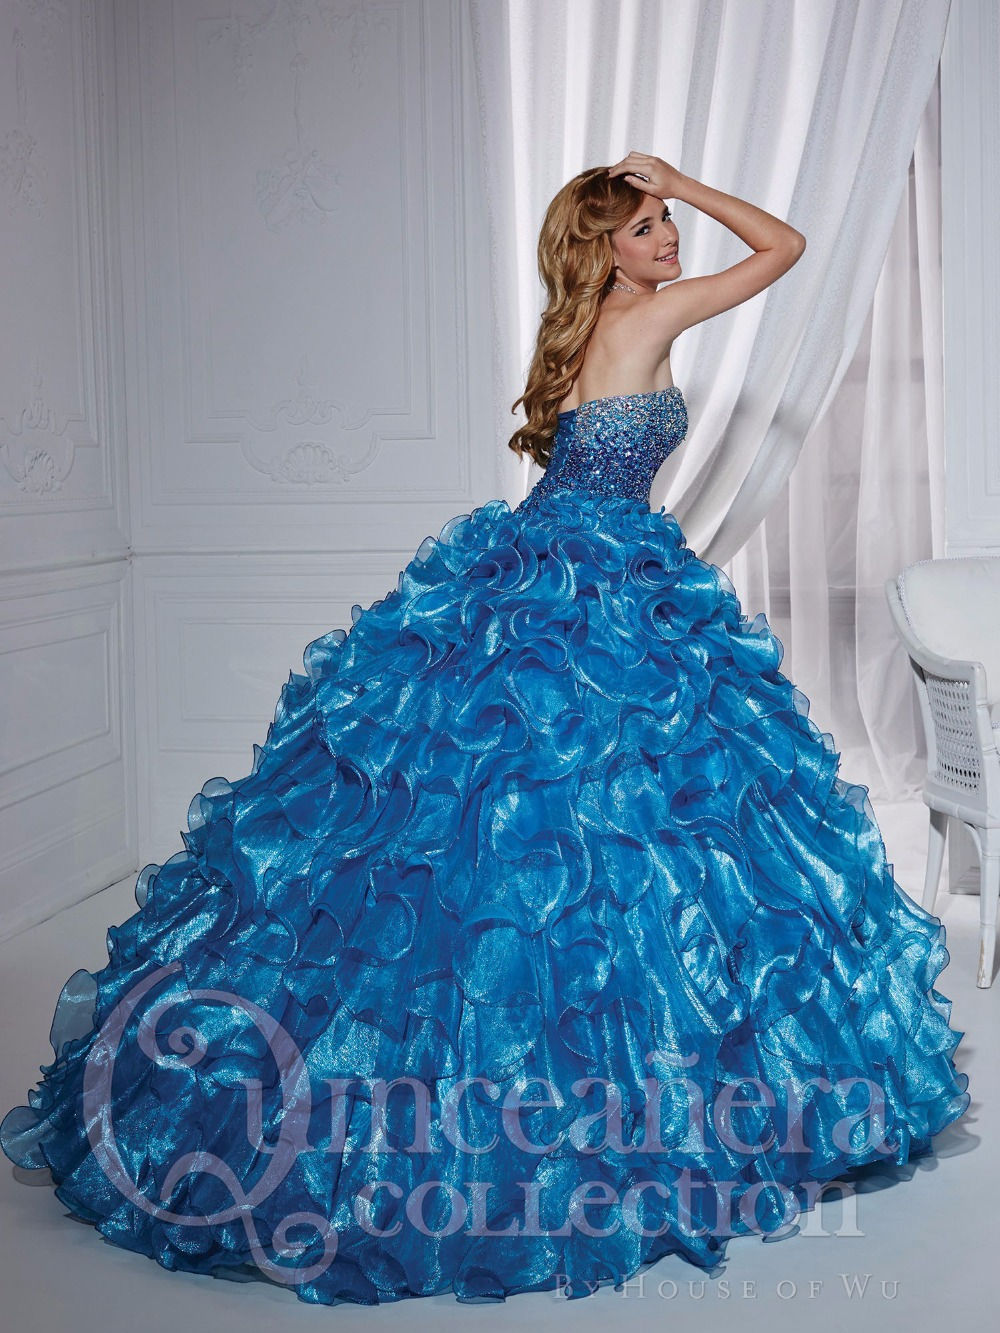 Glamorous Strapless Blue Quinceanera Dress 2017 New Style Shiny ...